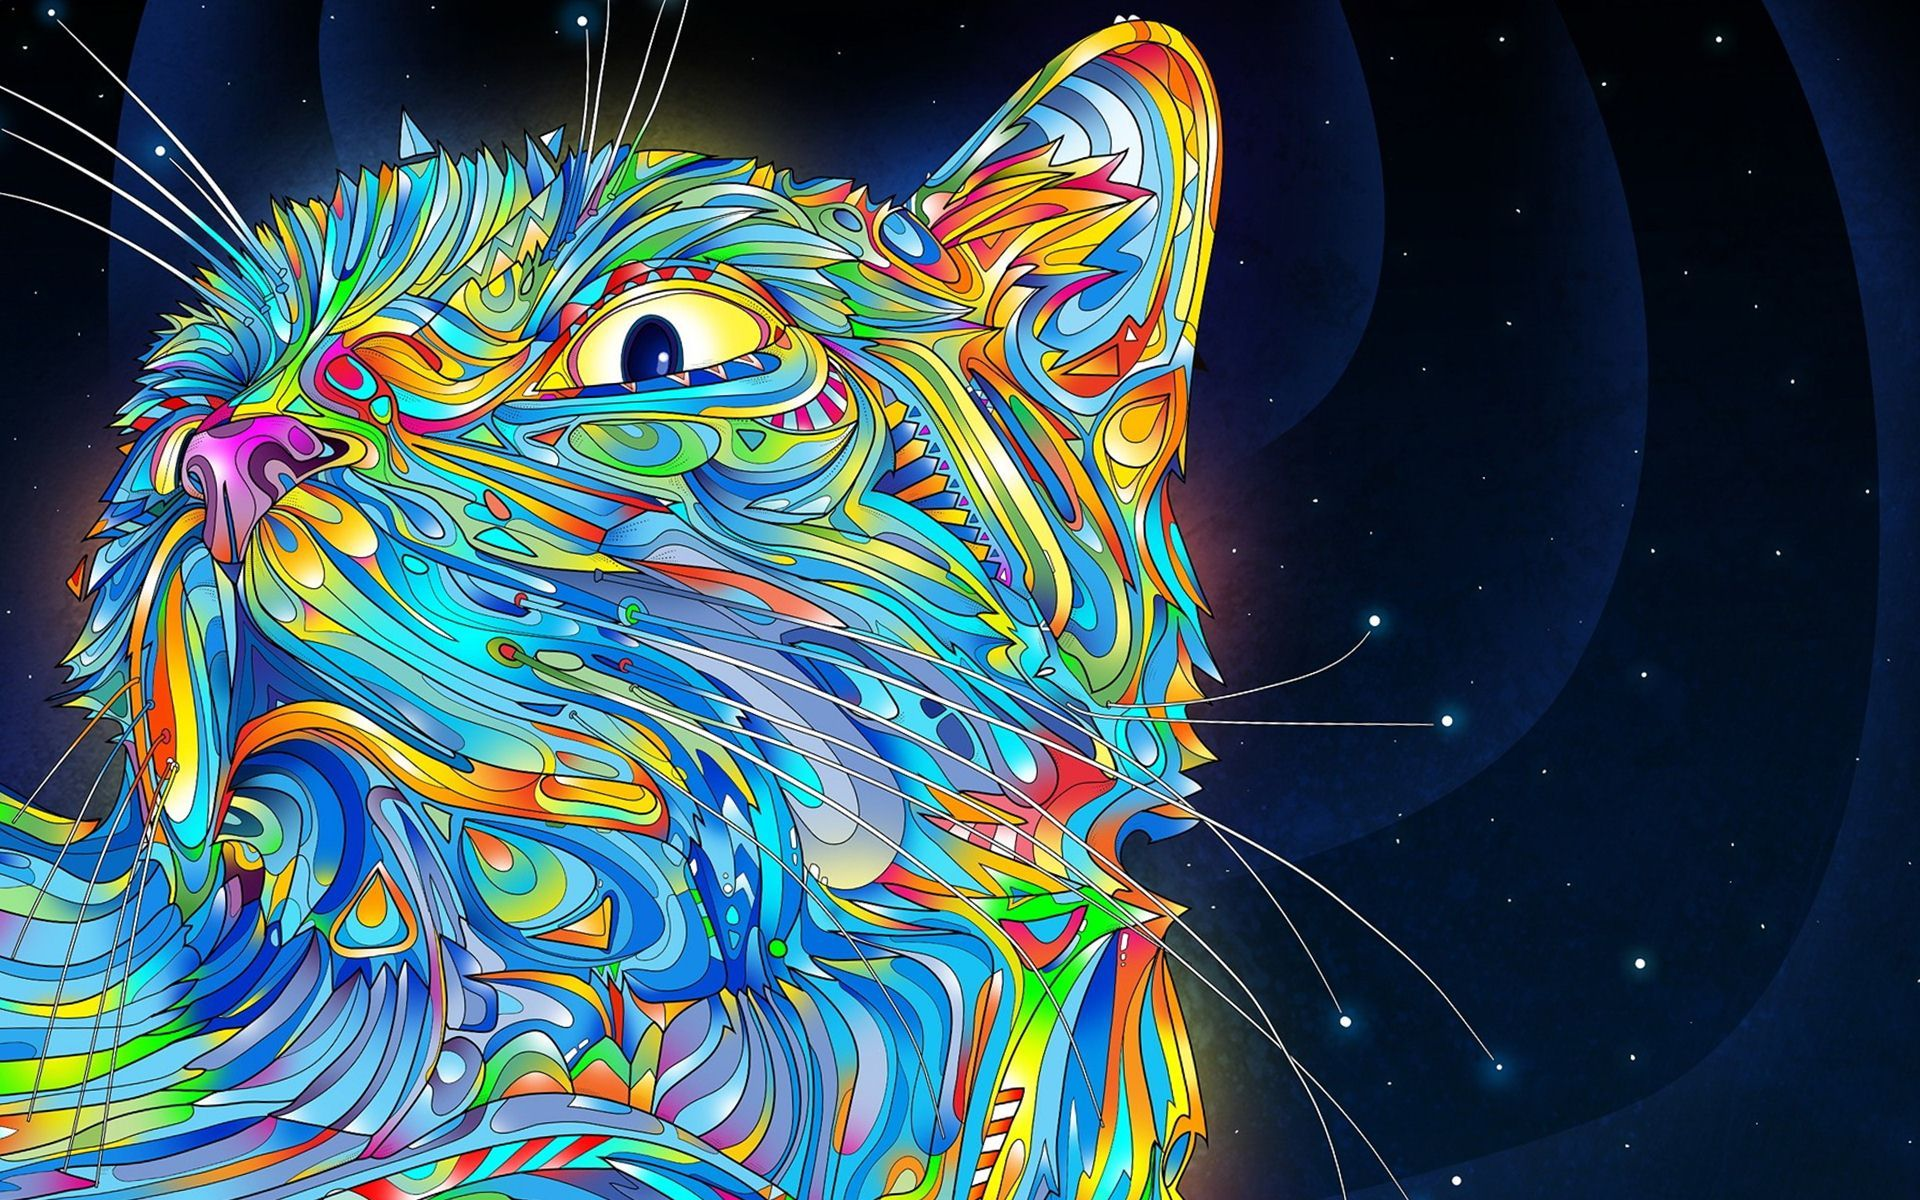 Cat Trippy Creative Colorful Wallpaper High Quality Wallpapers Cat Wallpaper Trippy Cat Art